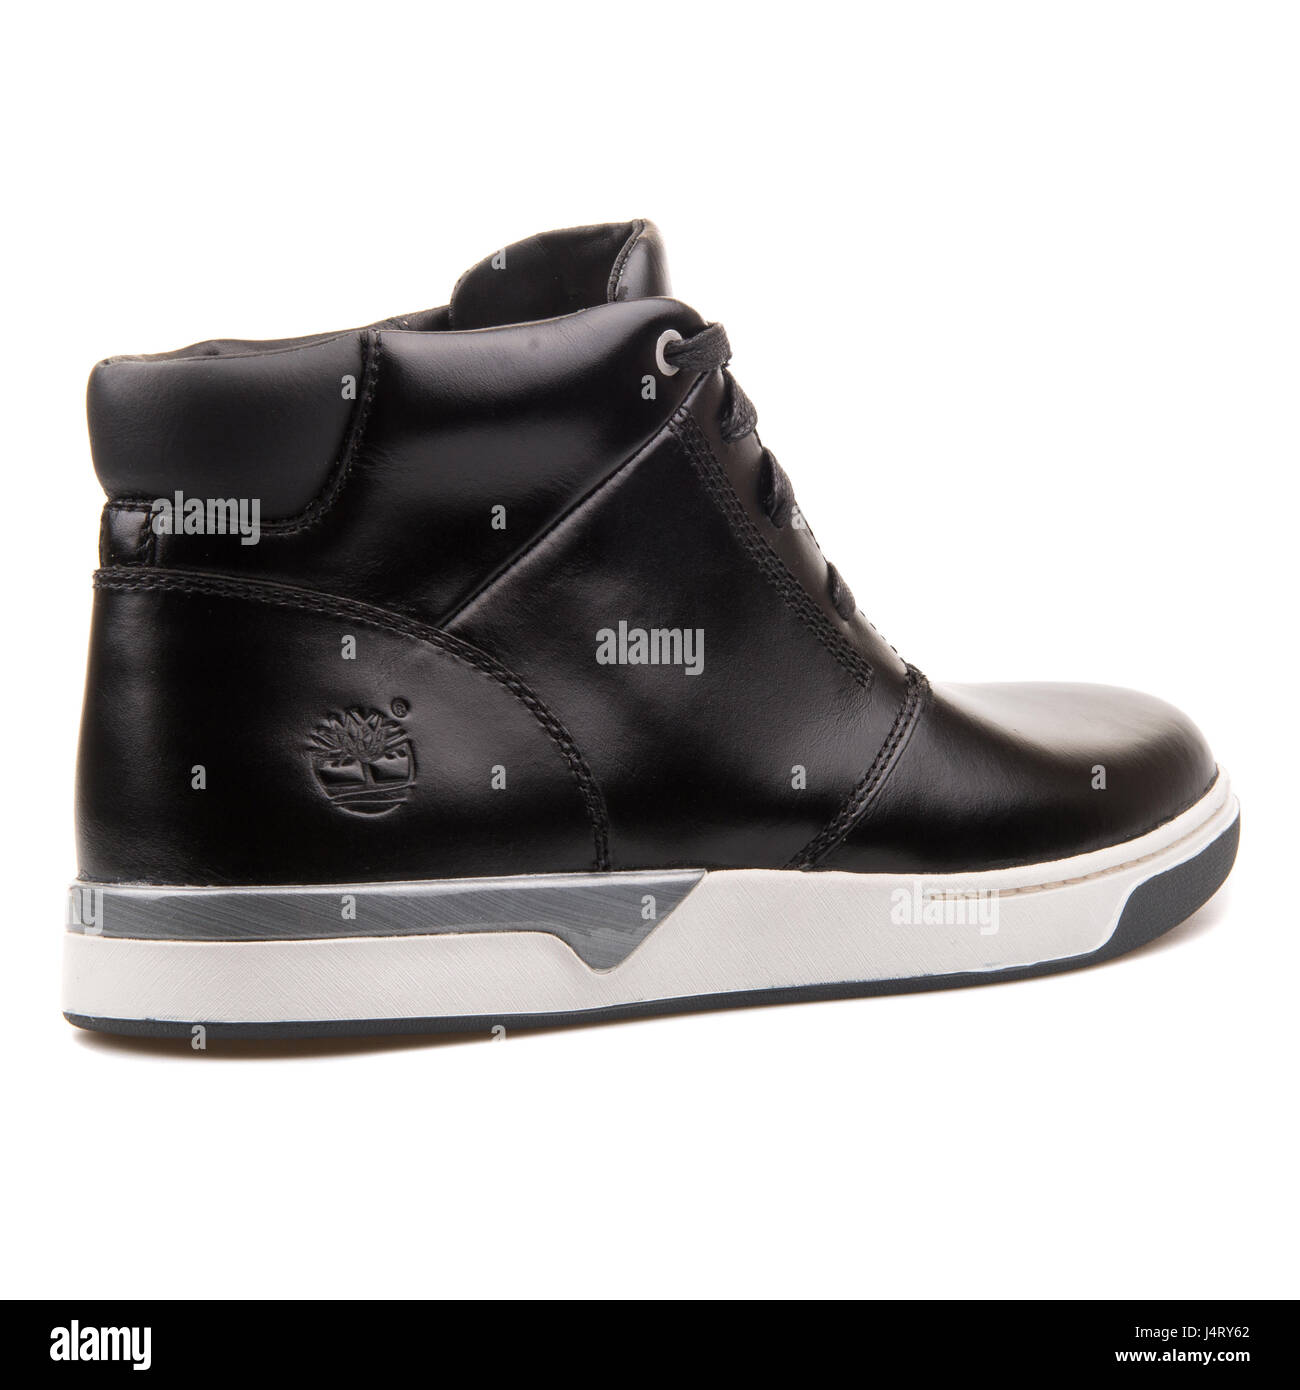 Premonición para Apellido  Timberland Leather Chukka Black Men's Leather Boots - A12V7 Stock Photo -  Alamy